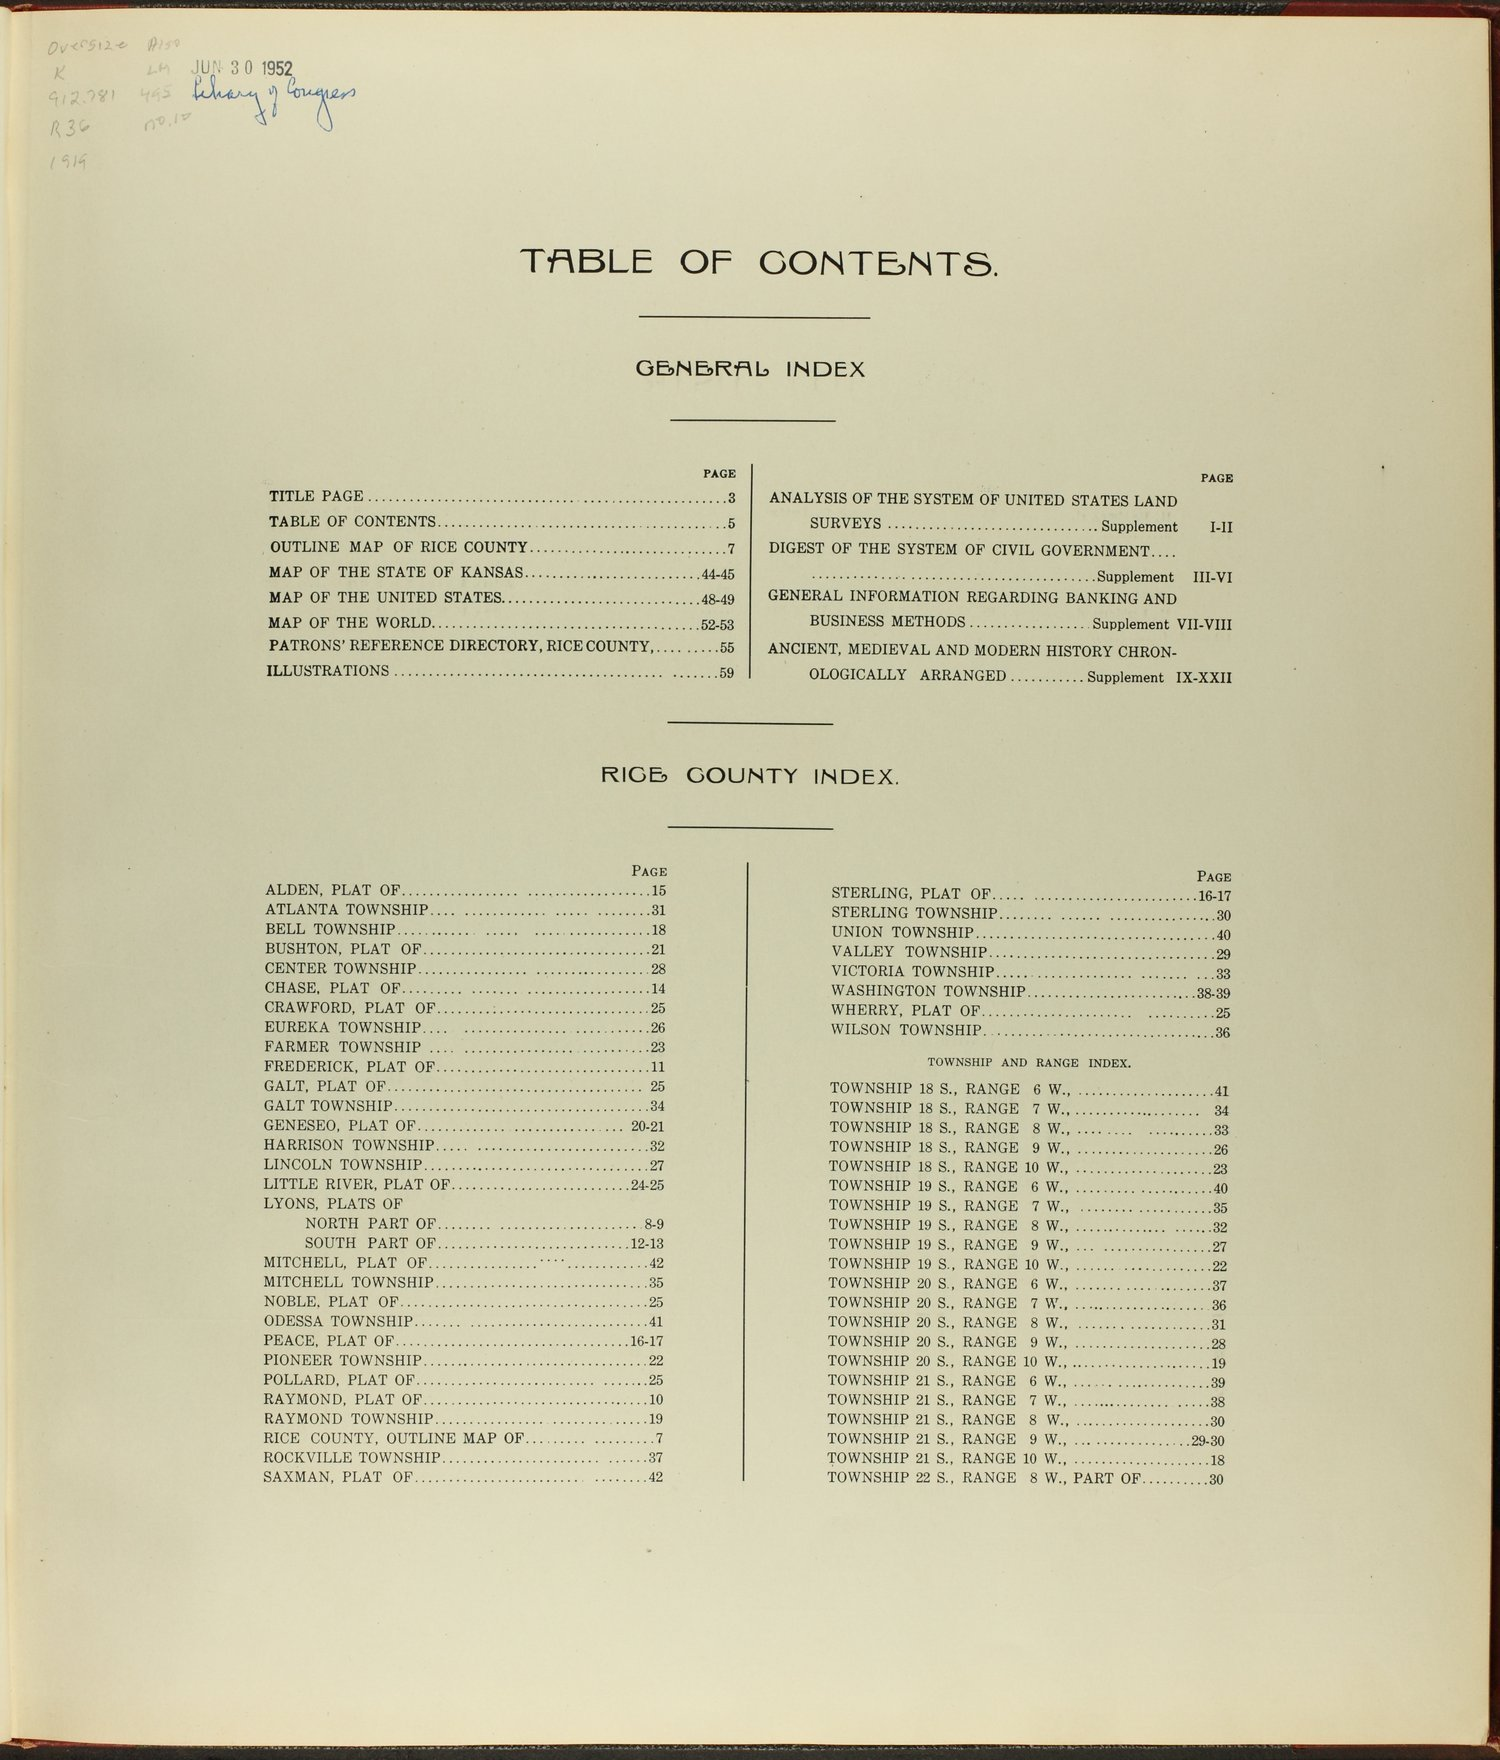 Standard atlas of Rice County, Kansas - Table of Contents